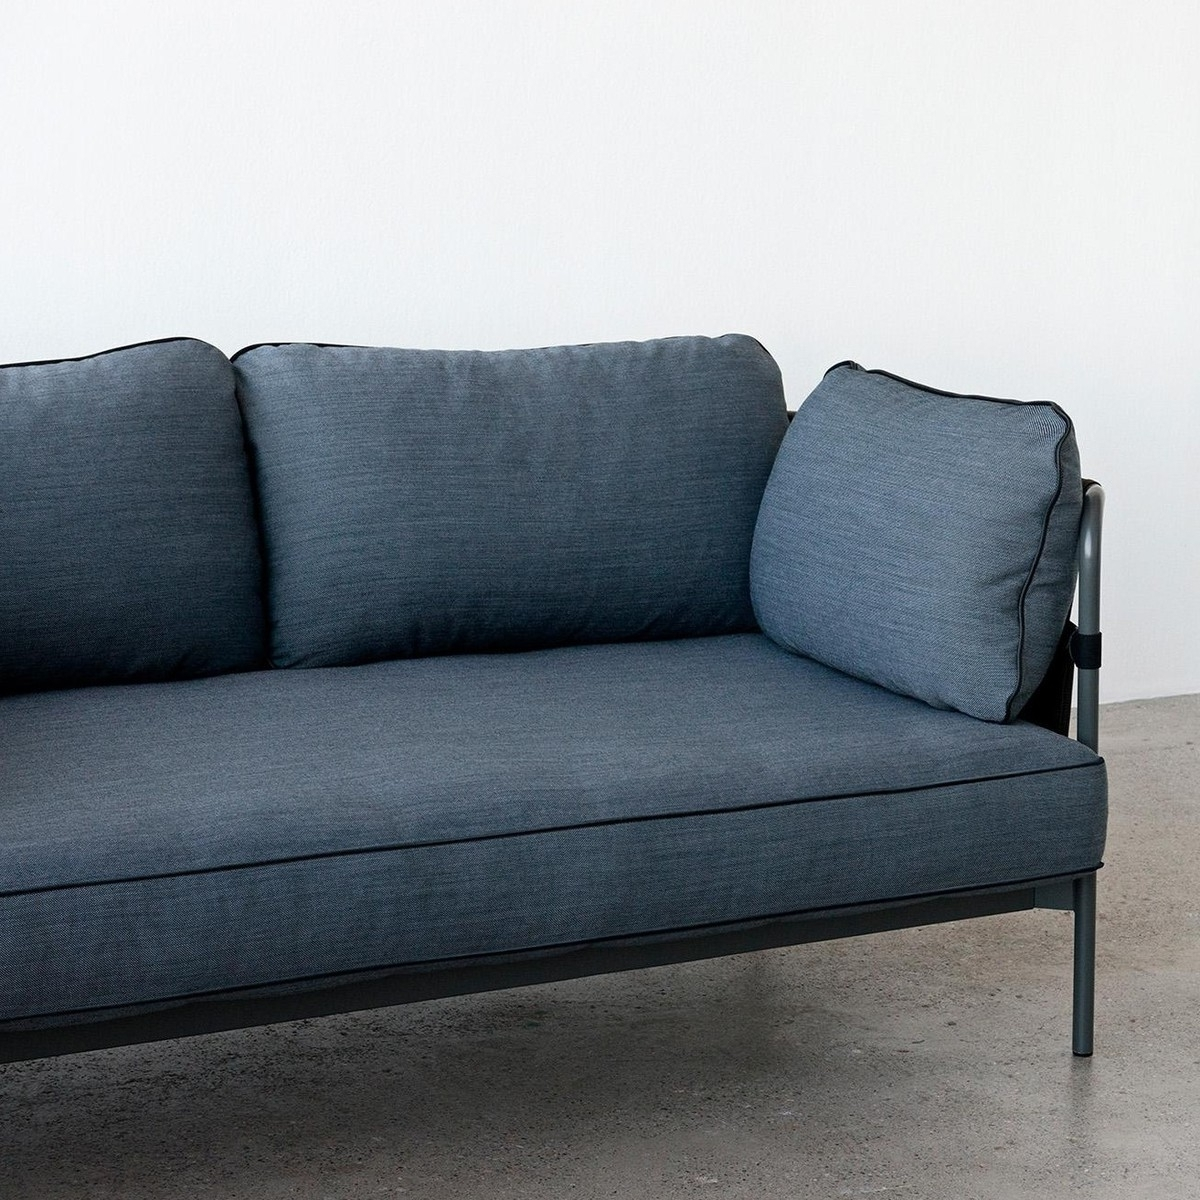 Current Can 2 Seater Sofa Frame Black (View 6 of 15)